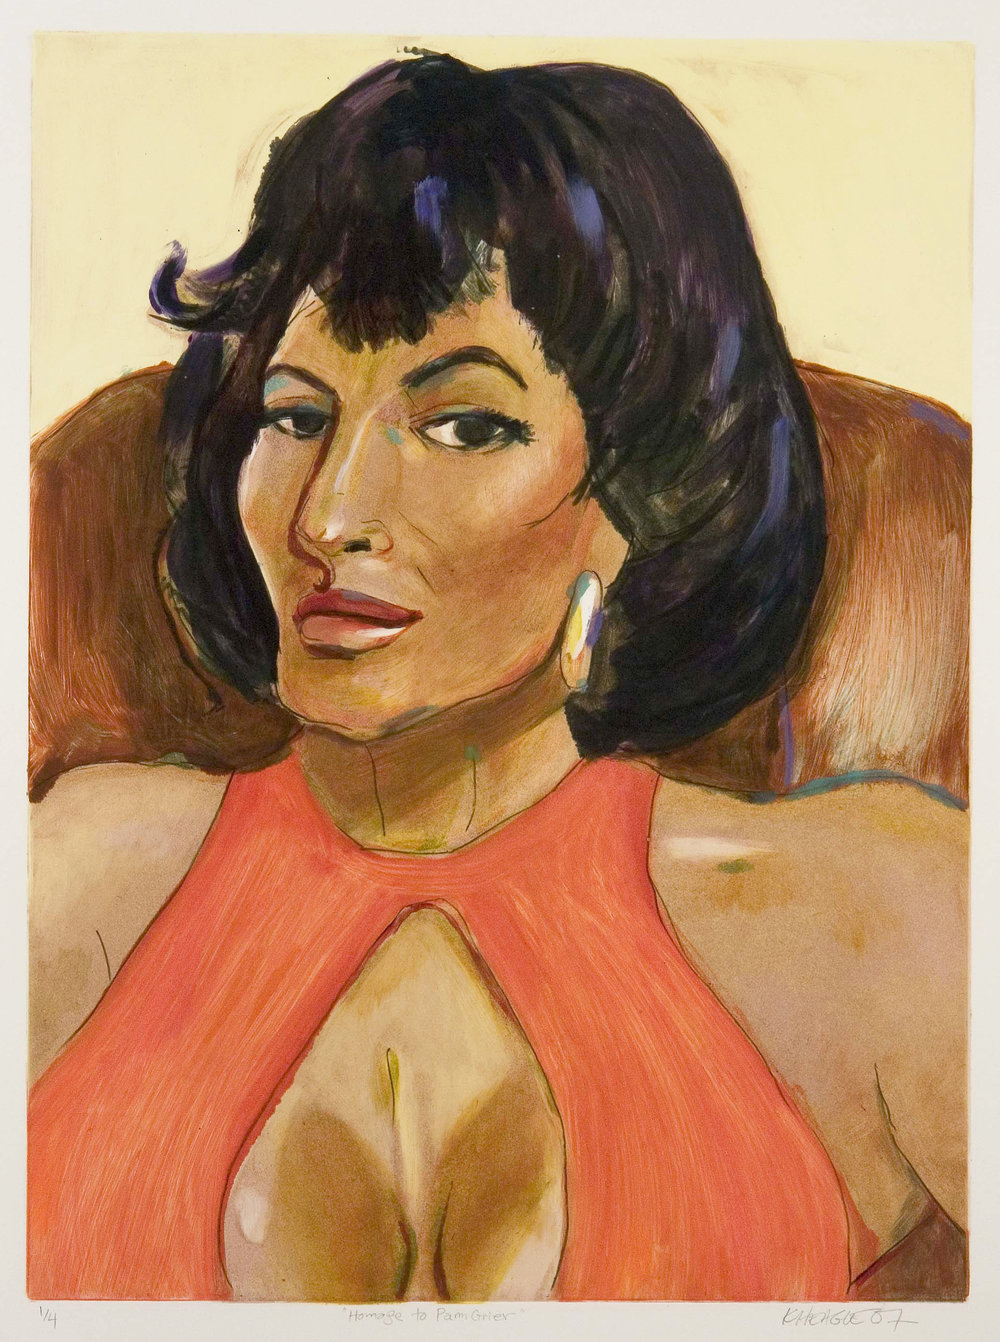 Homage to Pam Grier (I) , 2007 Monotype Image size: 24 x 17.5 inches Paper size: 30 x 22 inches Series of 4